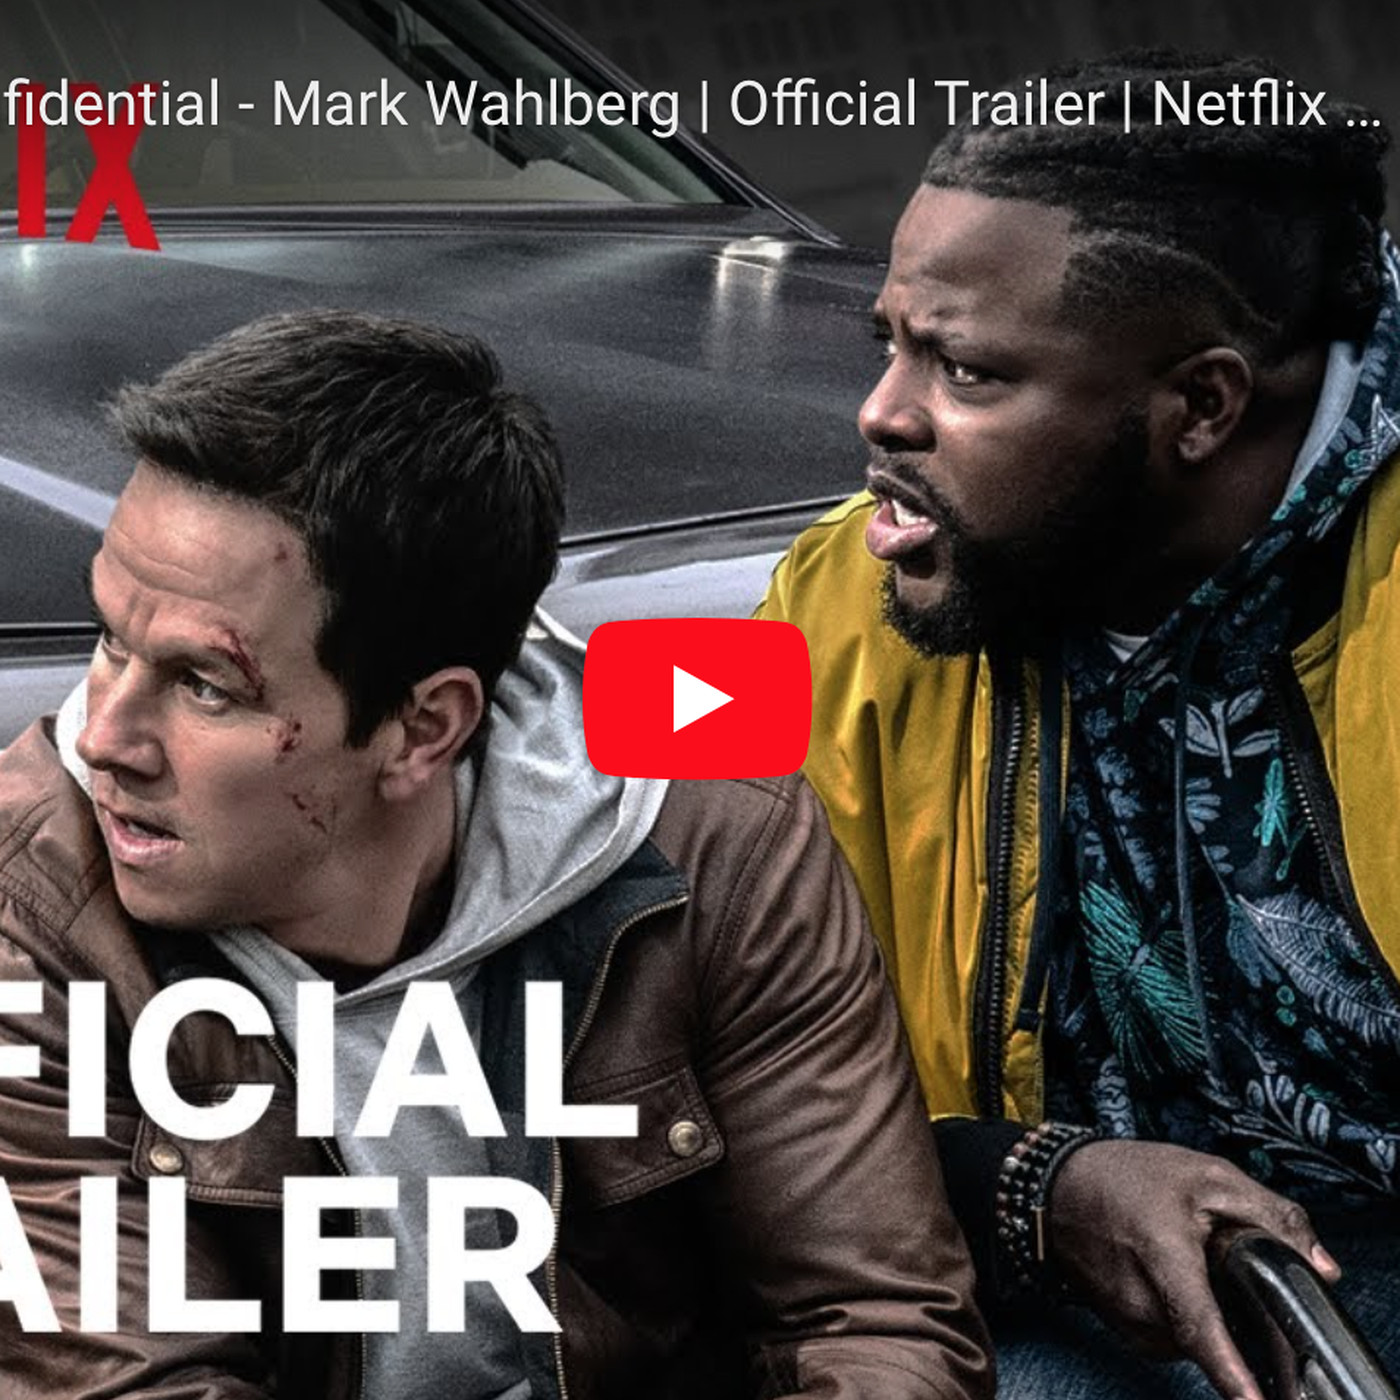 Video Watch Mark Wahlberg Whoop Cowboy Cerrone In New Trailer For Spenser Confidential On Netflix Mmamania Com